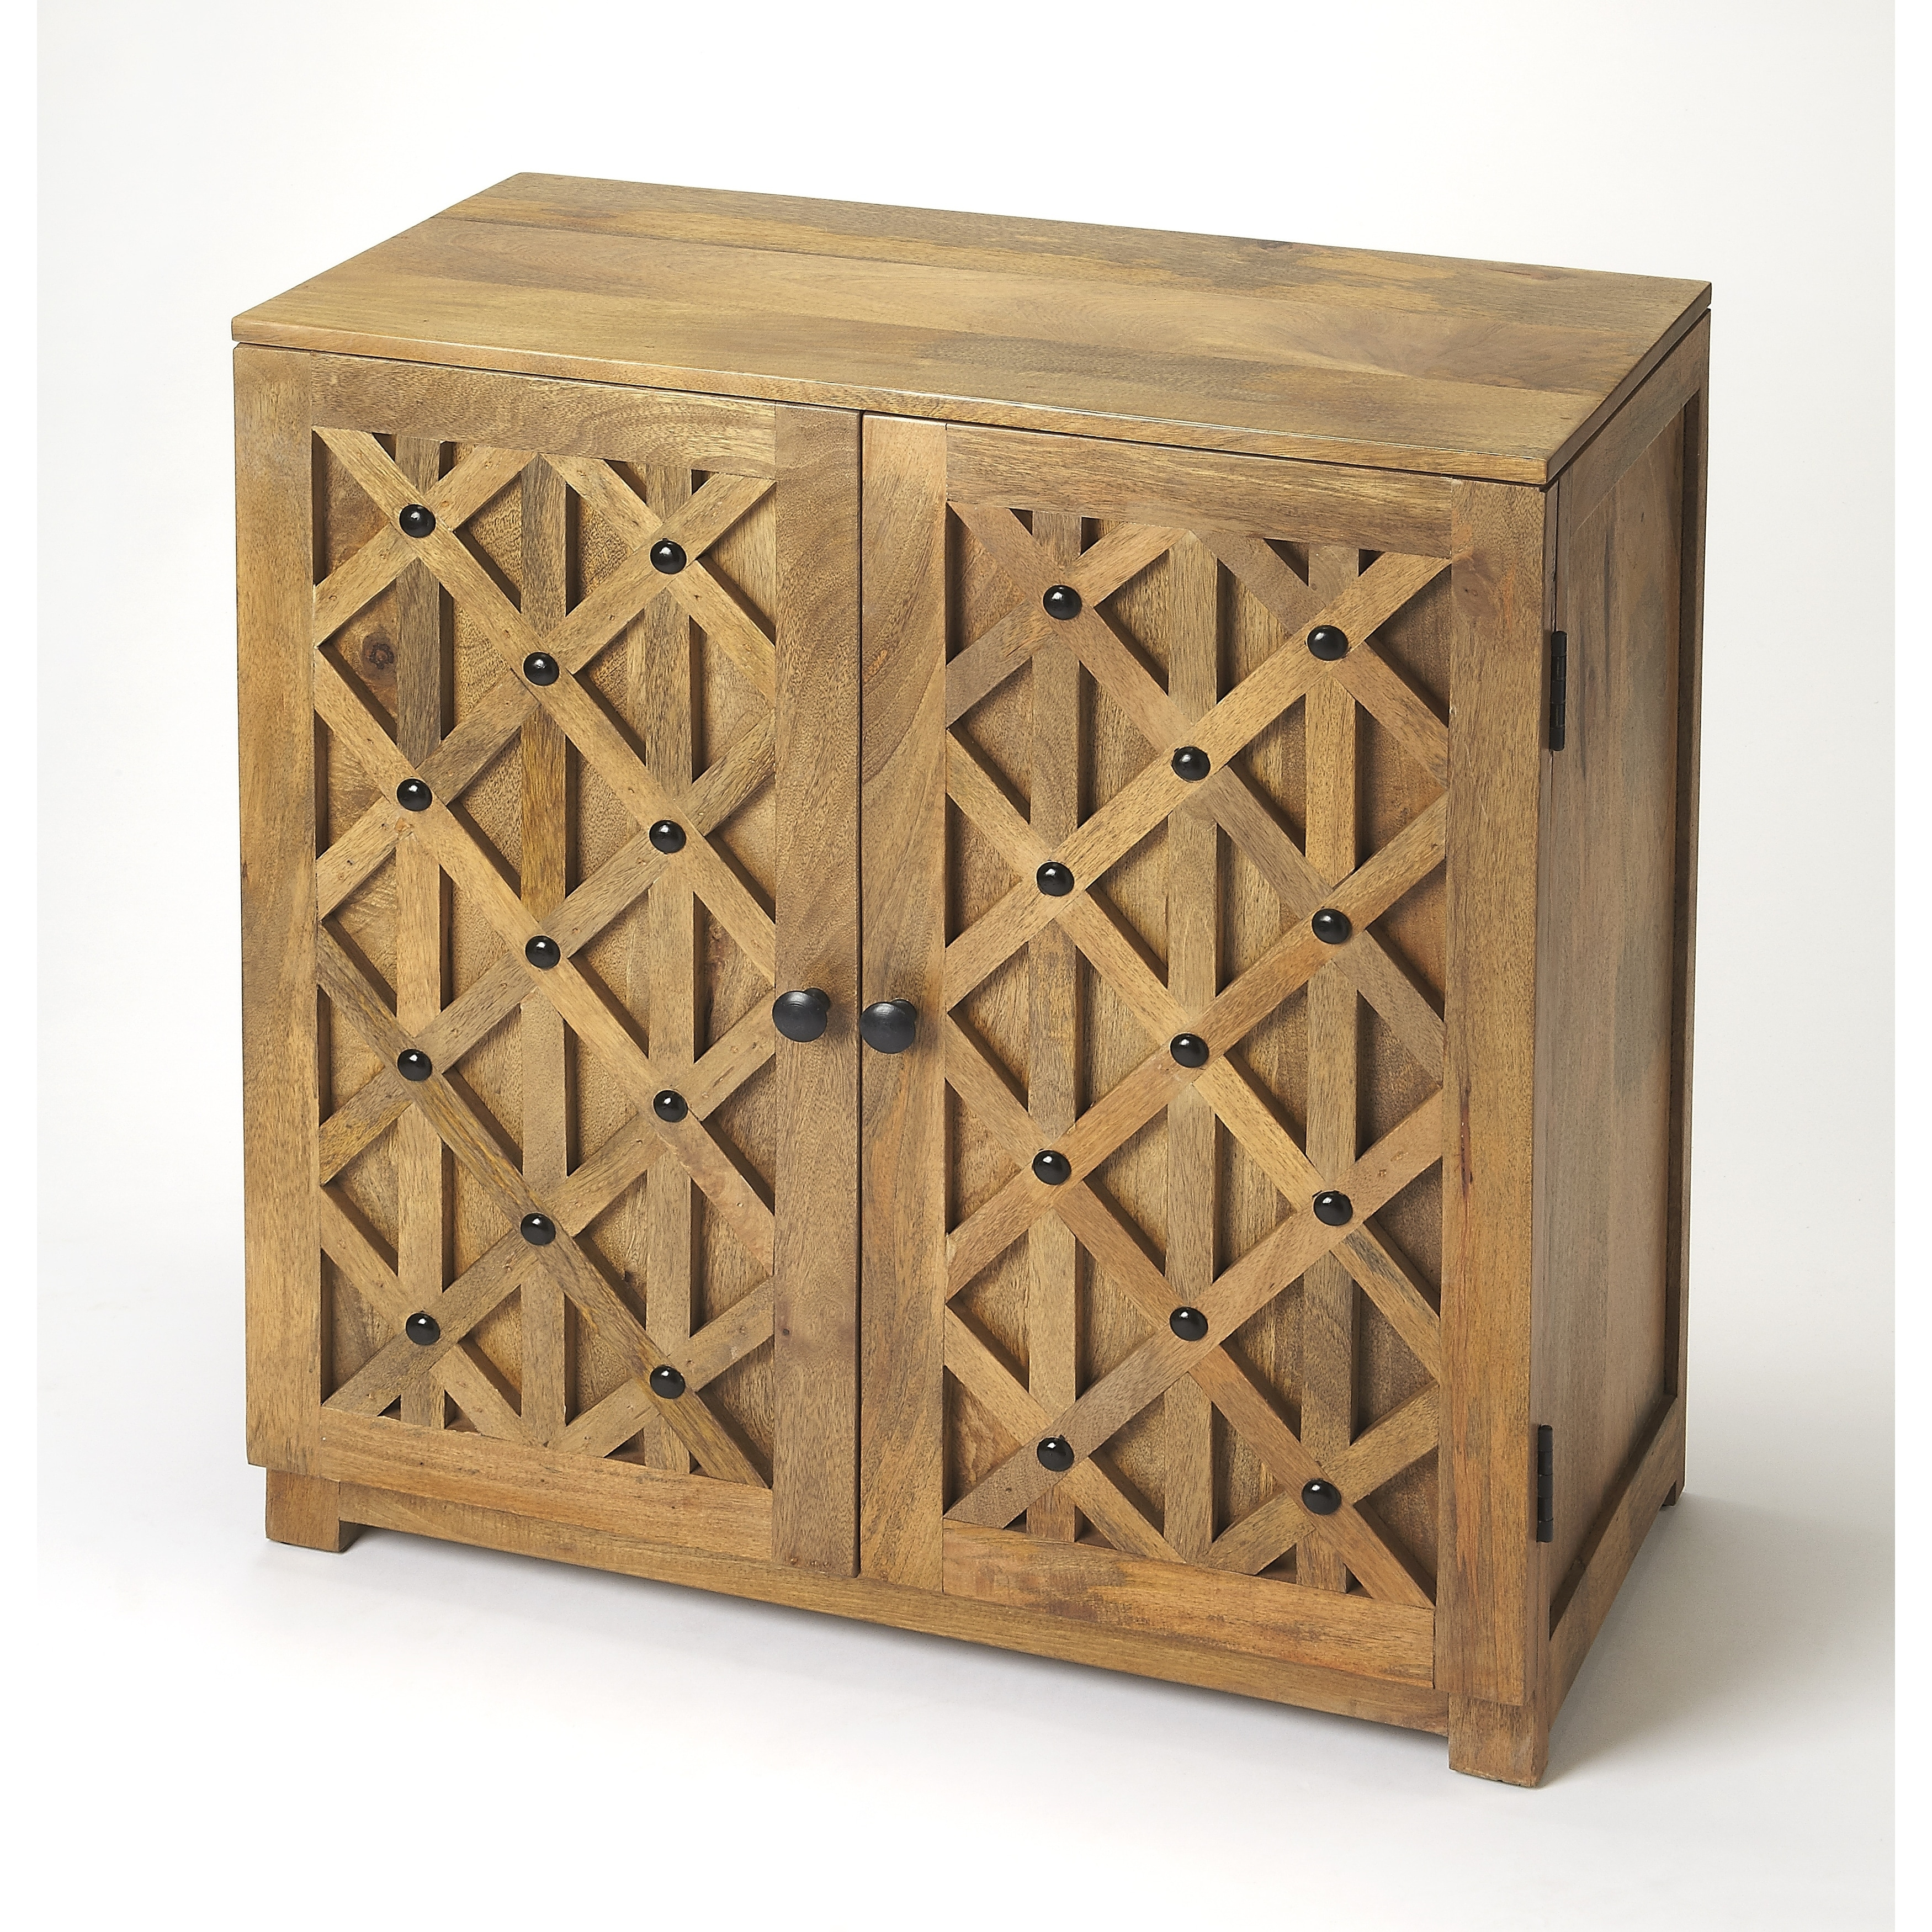 Shop Butler Corona Mango Wood Console Cabinet - Free Shipping Today - Overstock.com - 19224168